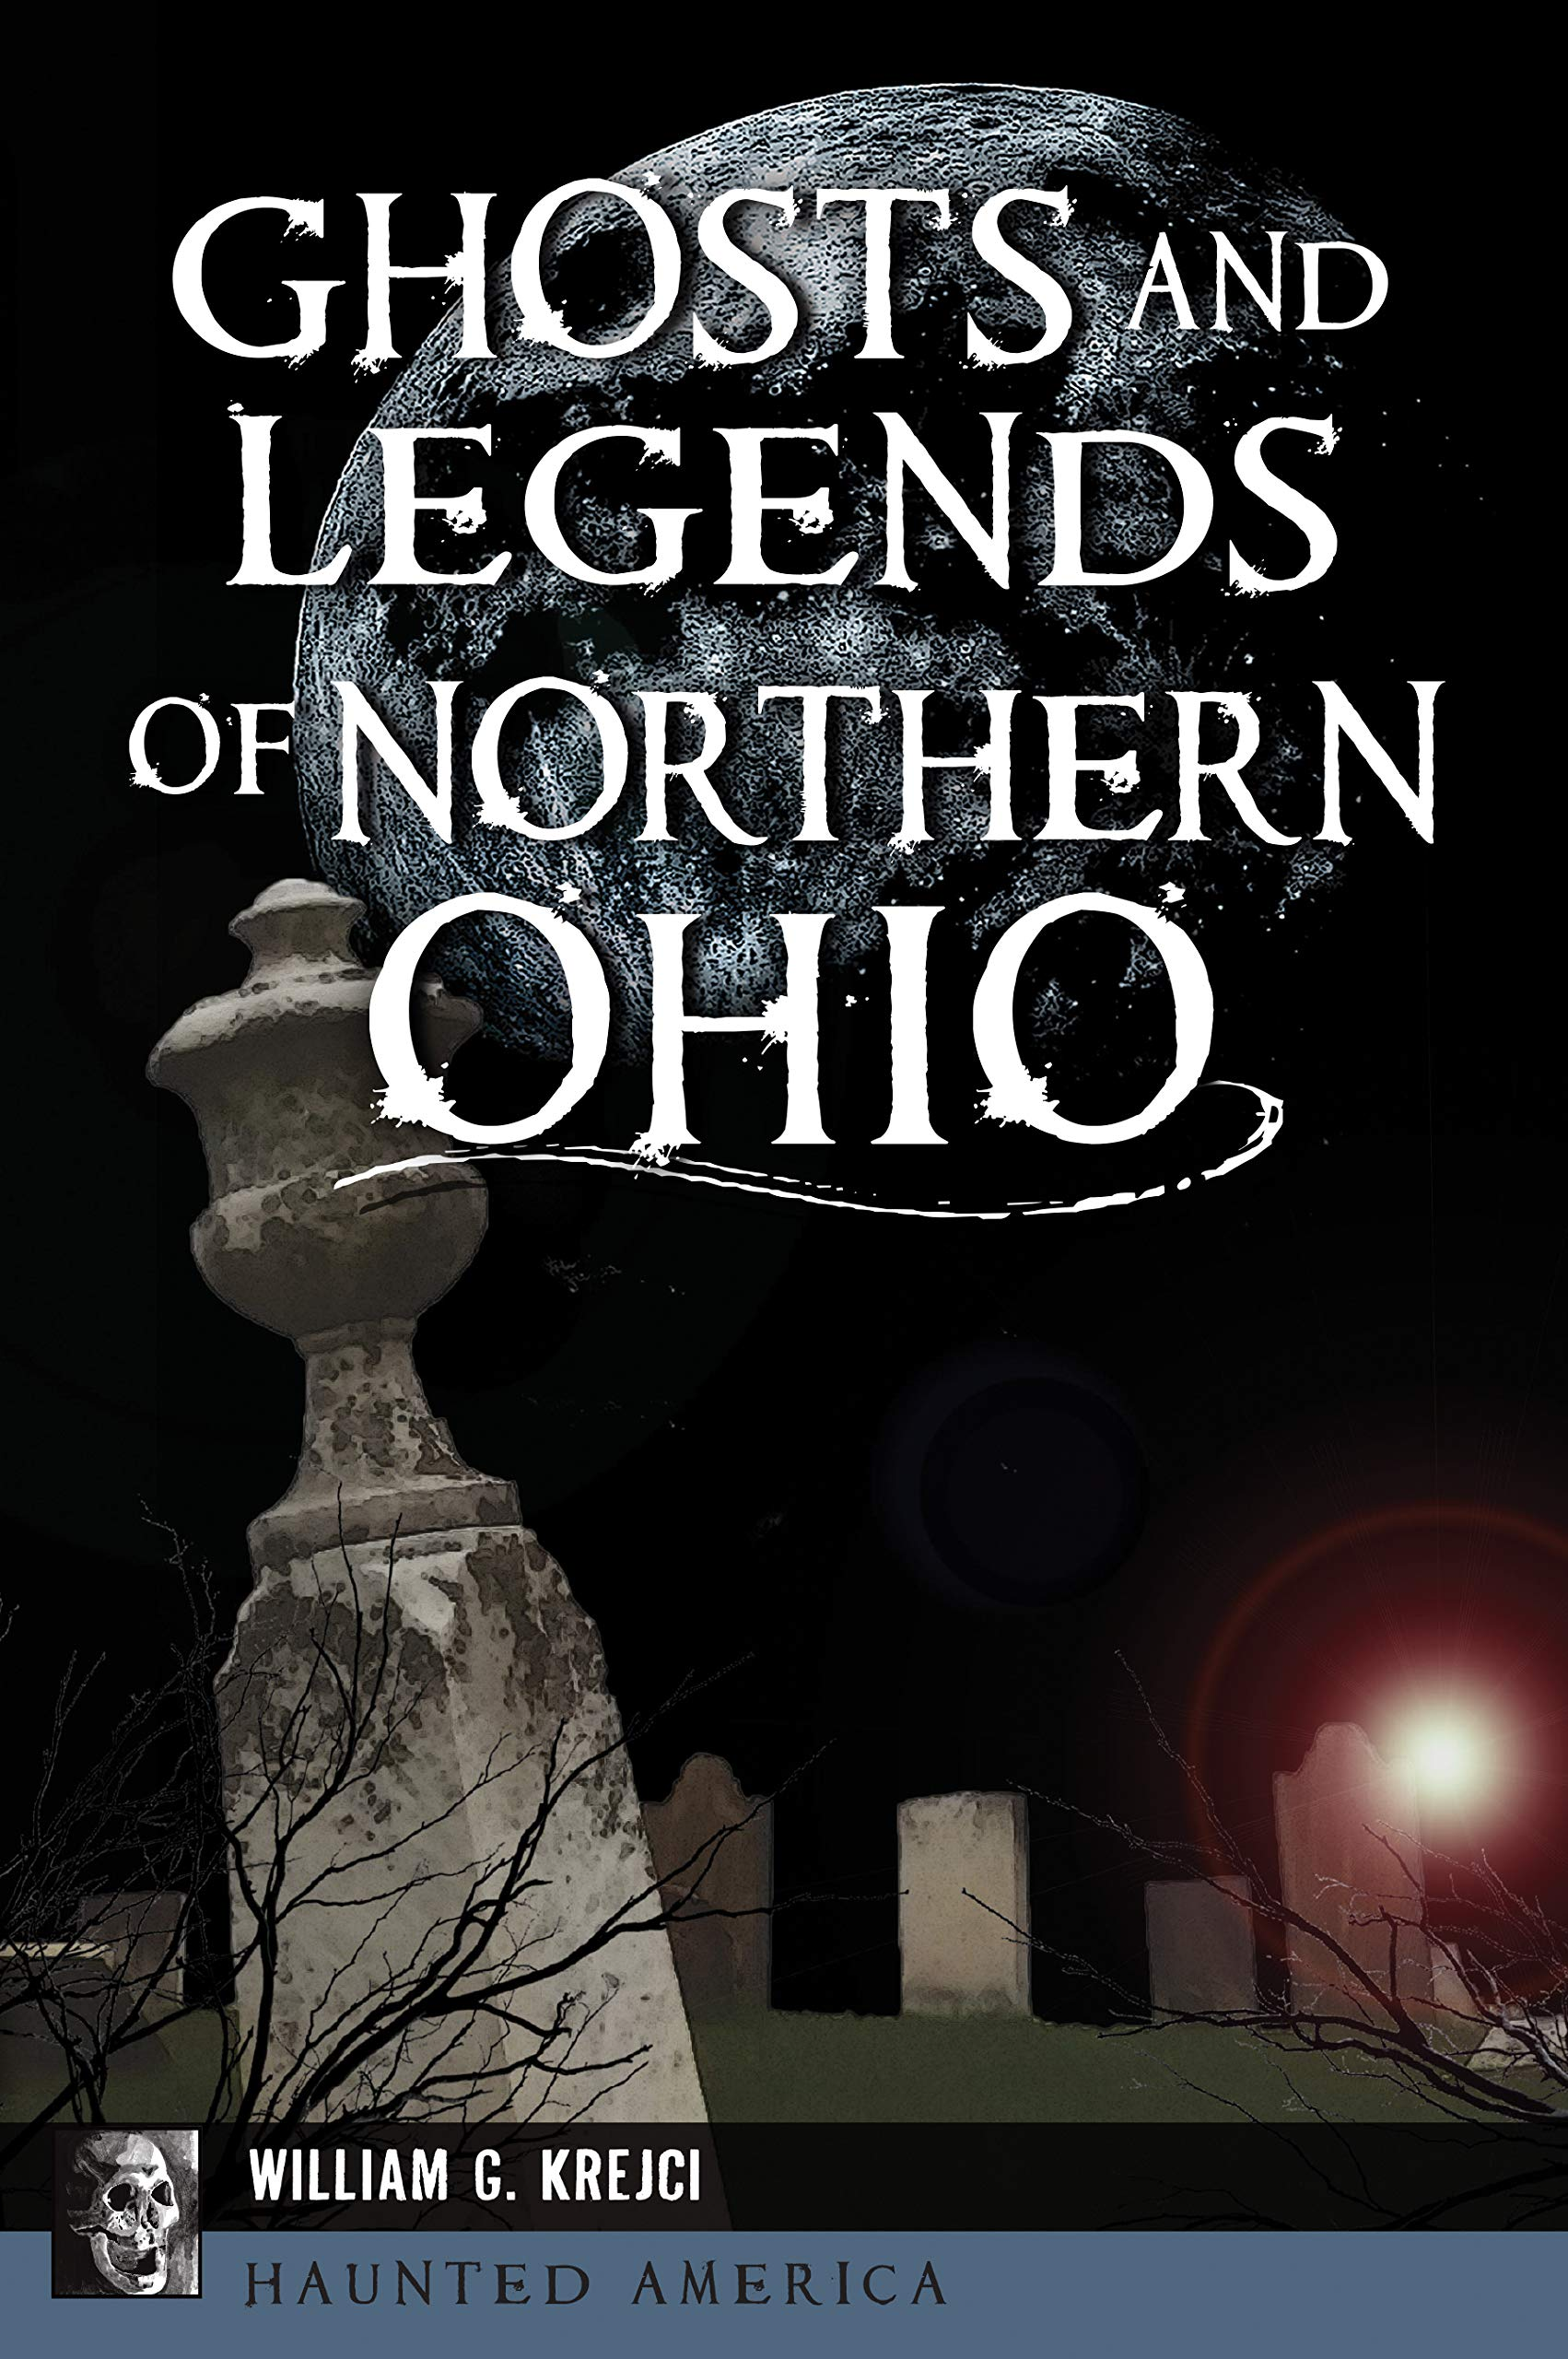 Ghosts and Legends of Northern Ohio: Author Bill Krejci